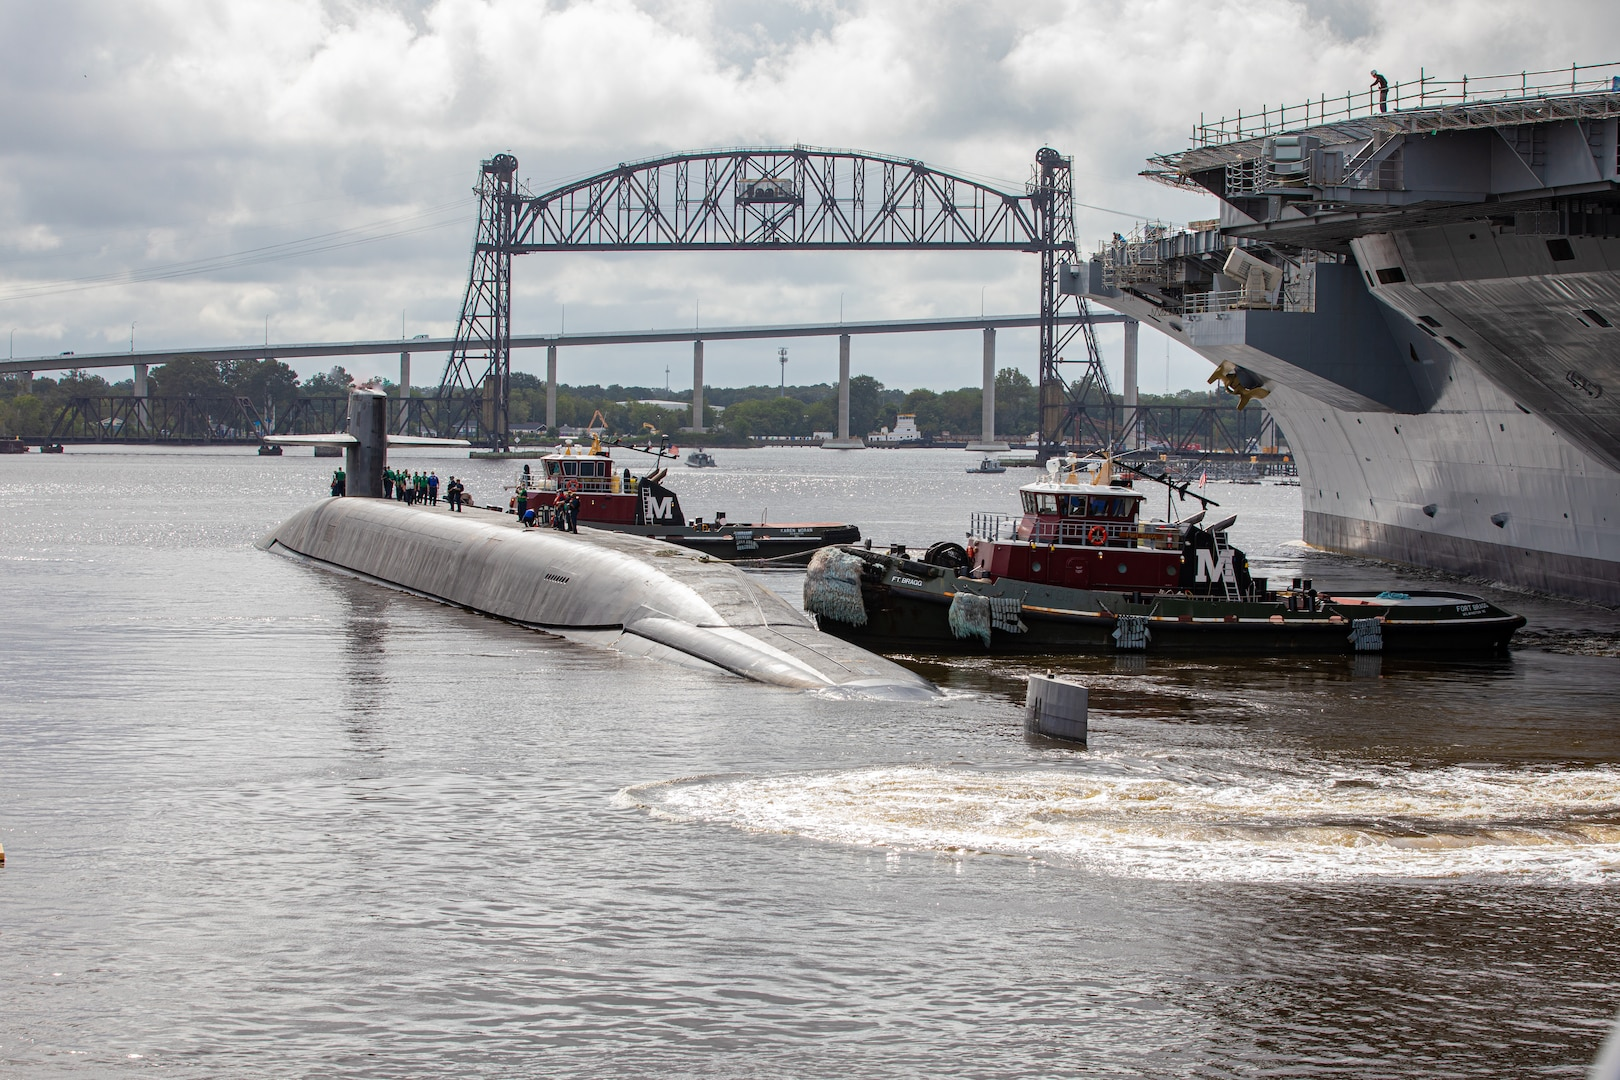 USS Wyoming (SSBN 742) has returned to the fleet following completion of its Norfolk Naval Shipyard (NNSY) Engineered Refueling Overhaul (ERO) Oct. 9.  Photo by Danny De Angelis, NNSY Photographer.